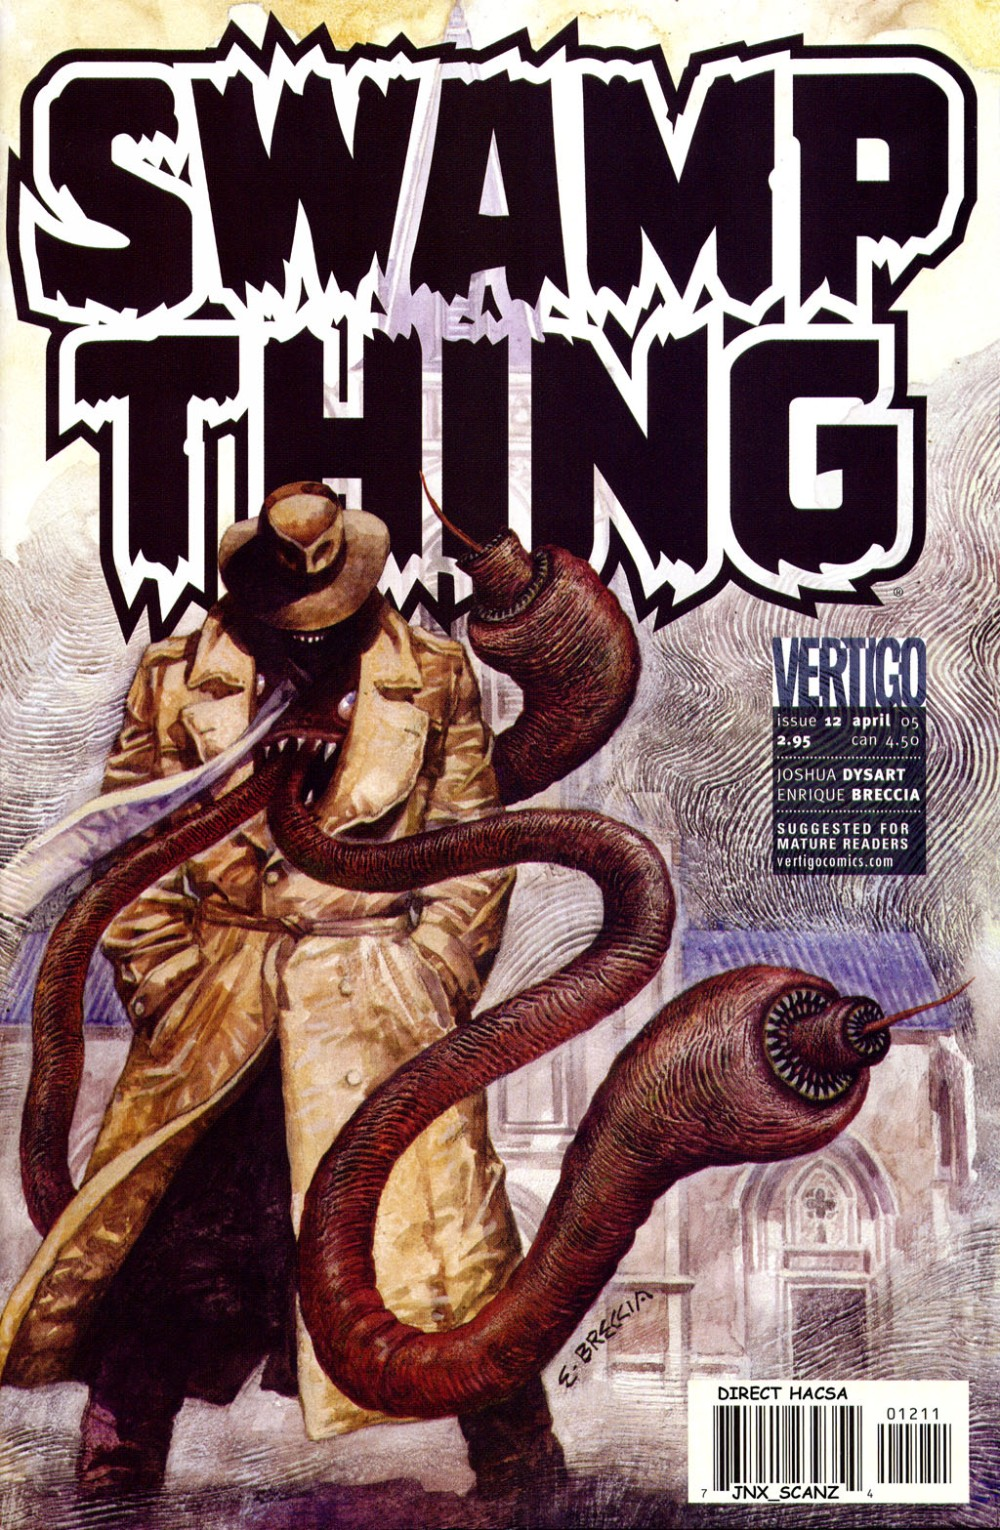 Swamp Thing [DC Vertigo] V3 0012.jpg